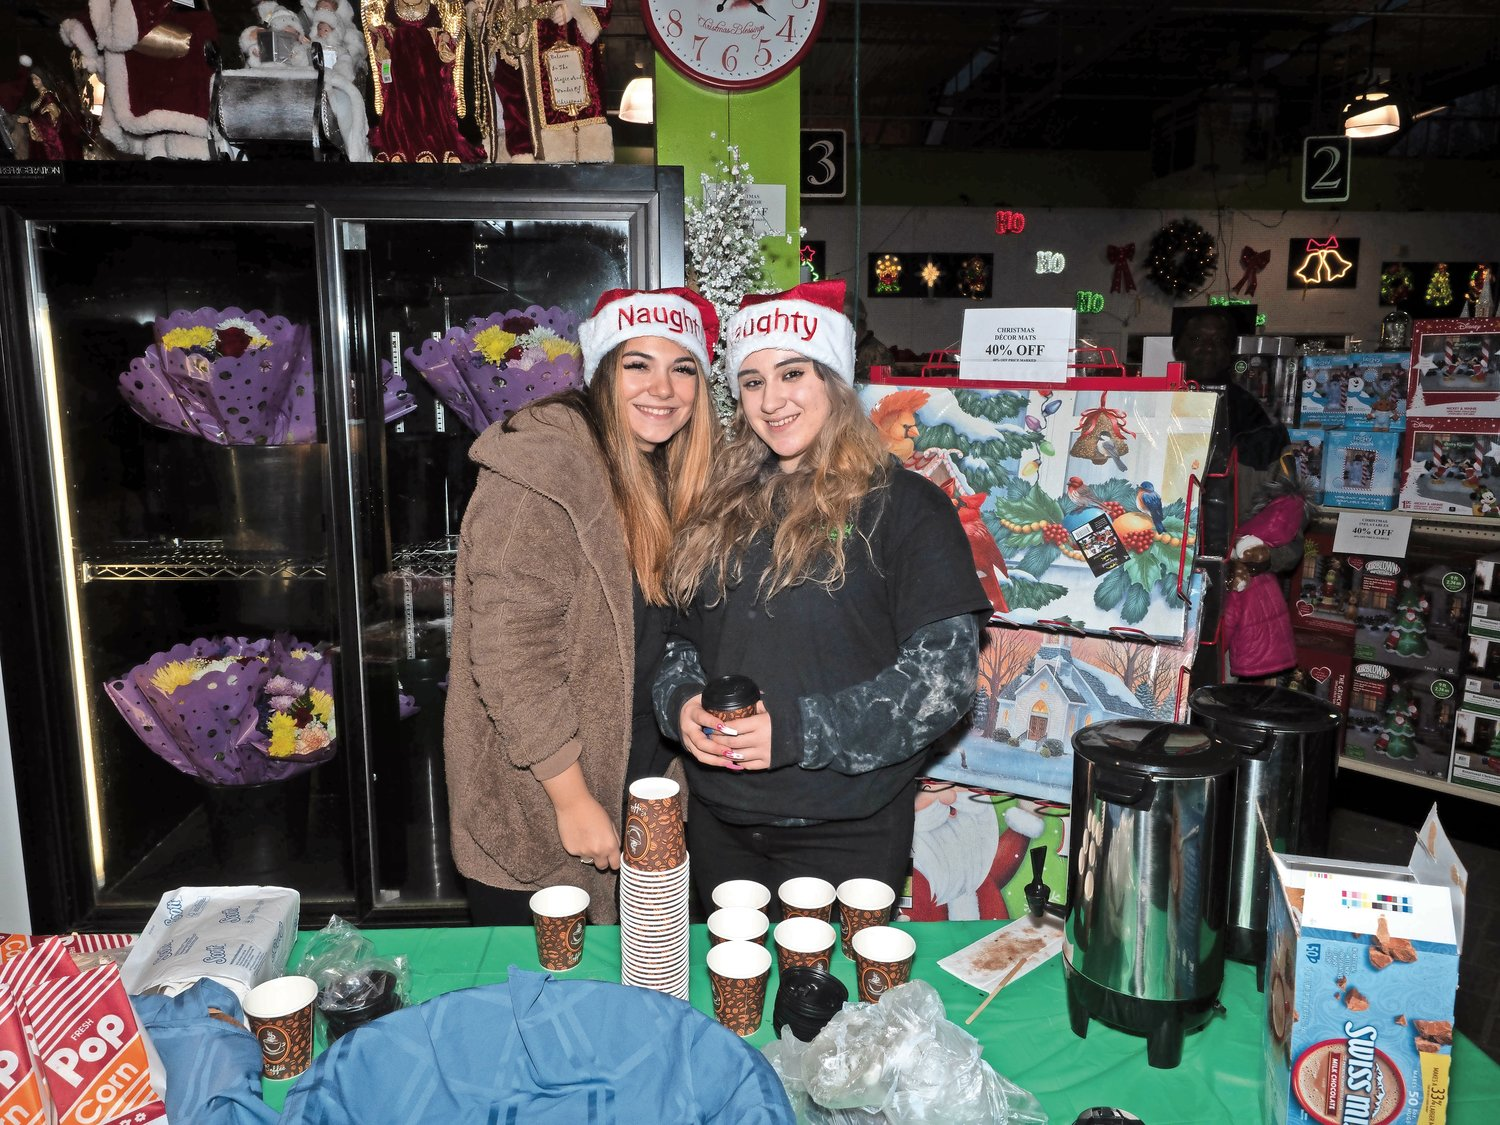 Christina Lisio and Nicole Napolitano handed out hot apple cider.